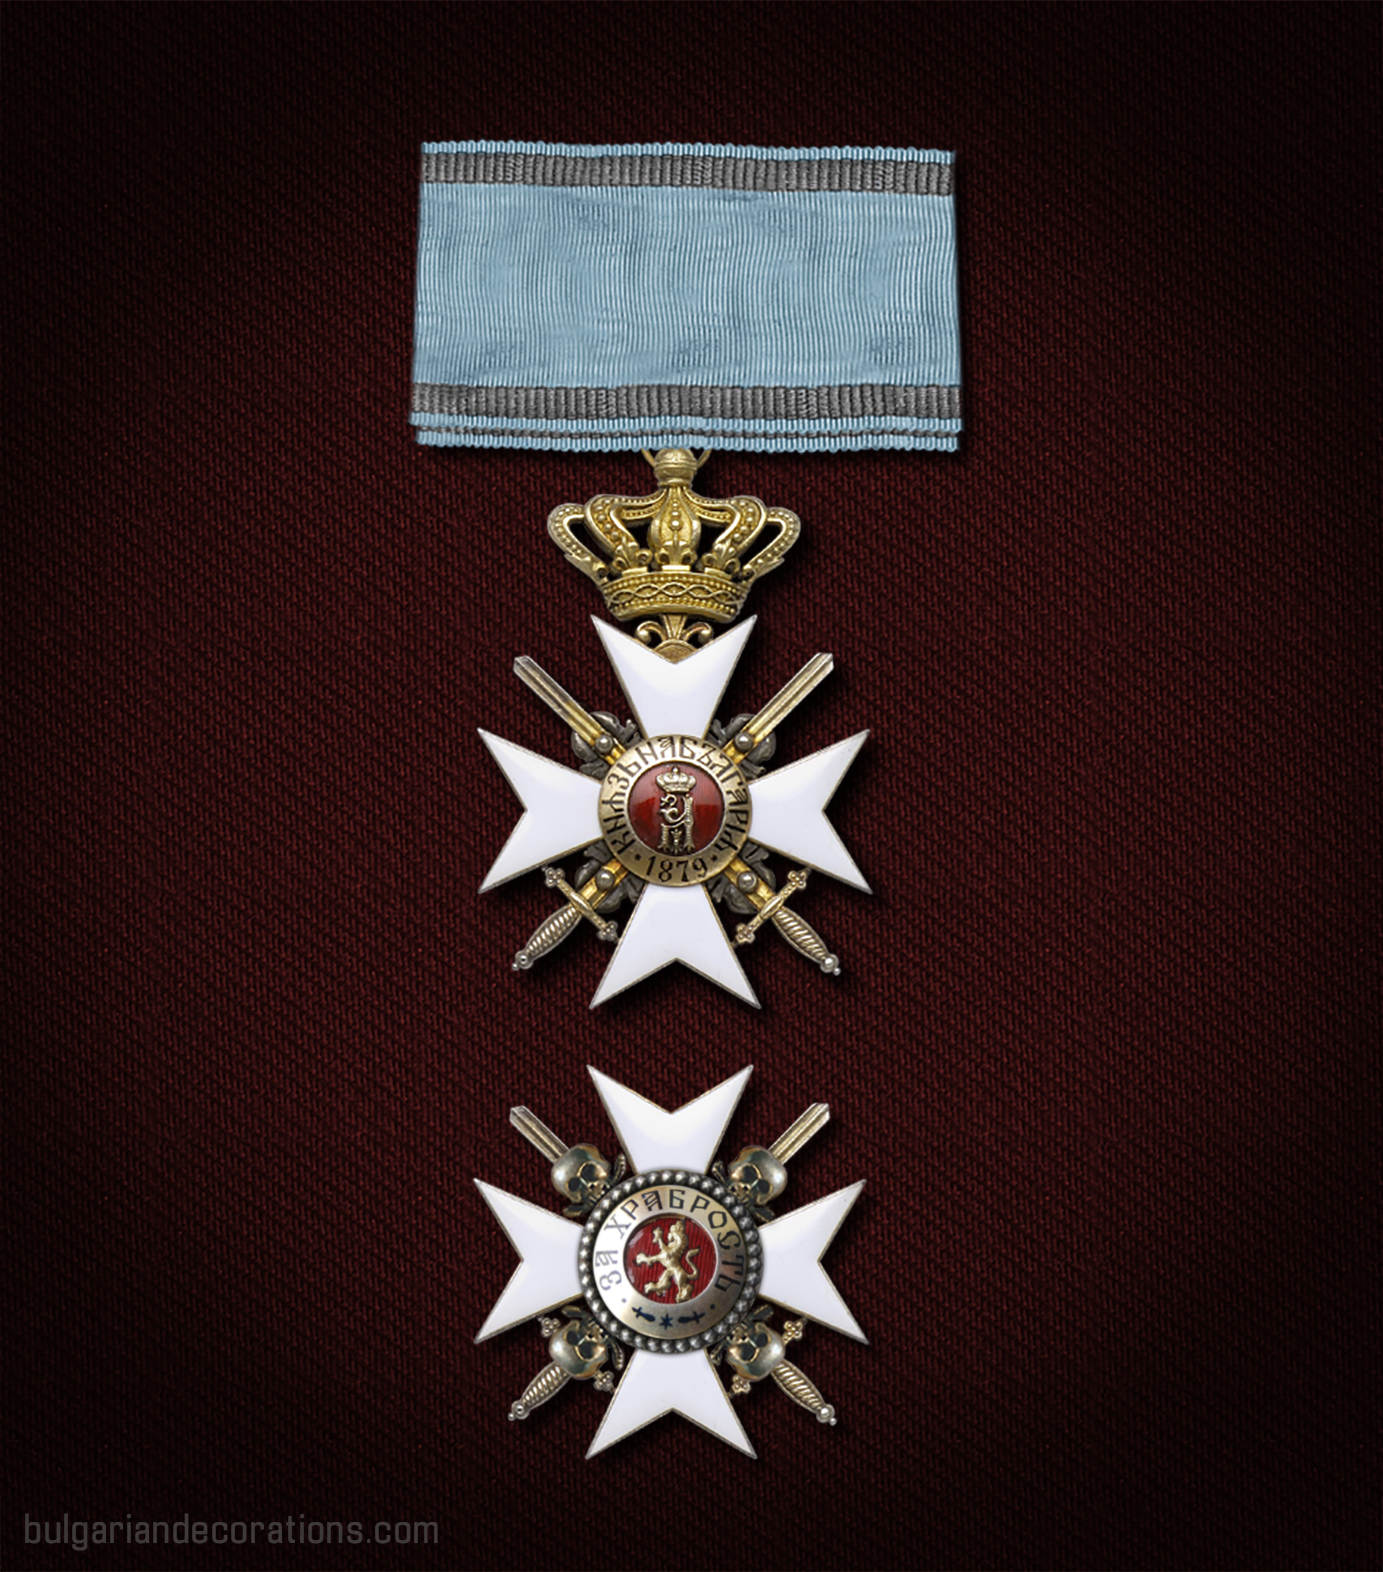 First class set with skulls and crossed bones, reverse and breast star (reconstruction)